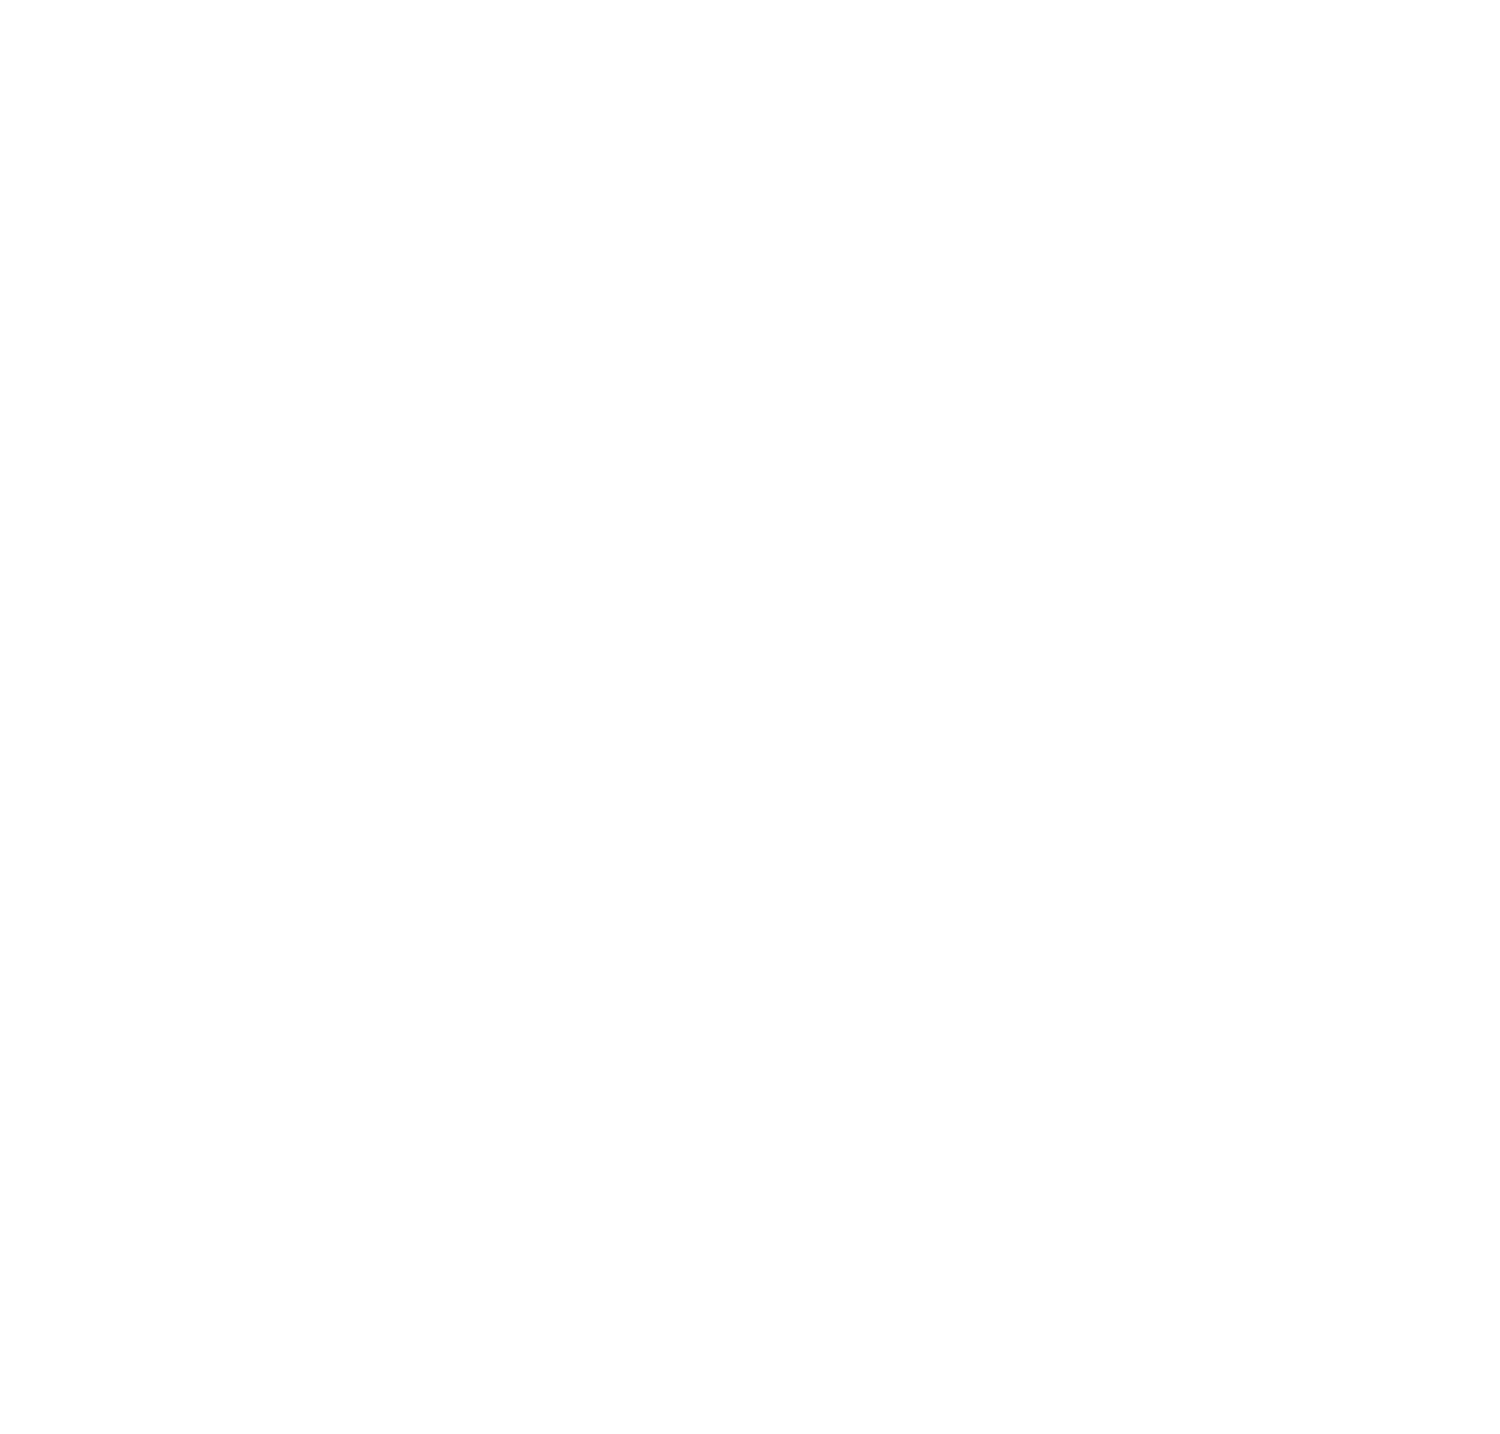 Bloomingfoods Co-op Market